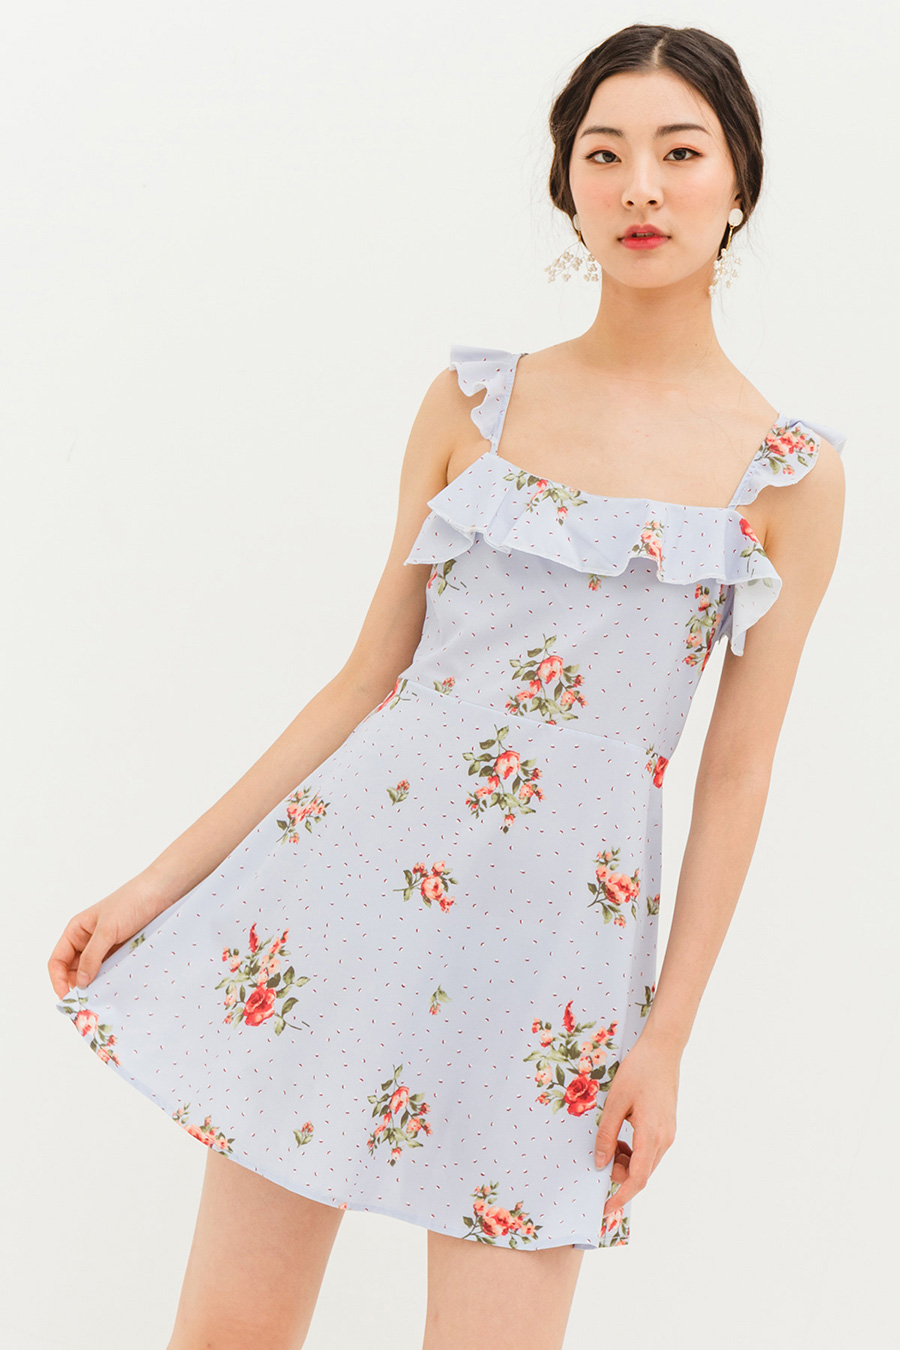 CLELIE DRESS - PETUNIA